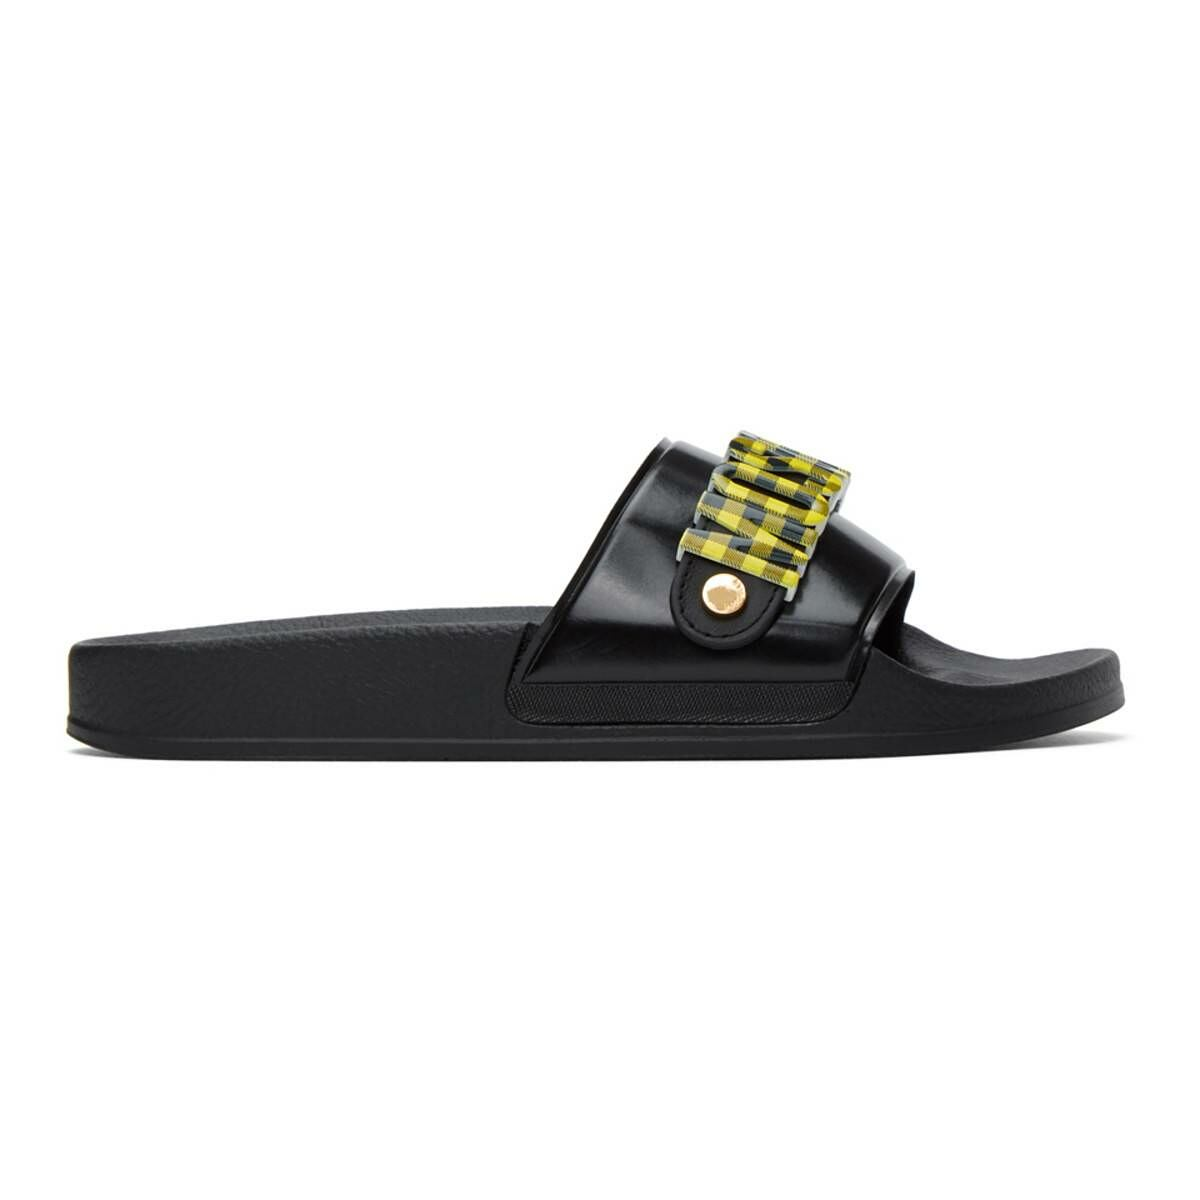 Moschino Yellow and Black Checkered Logo Slides Ssense USA MEN Men SHOES Mens SANDALS